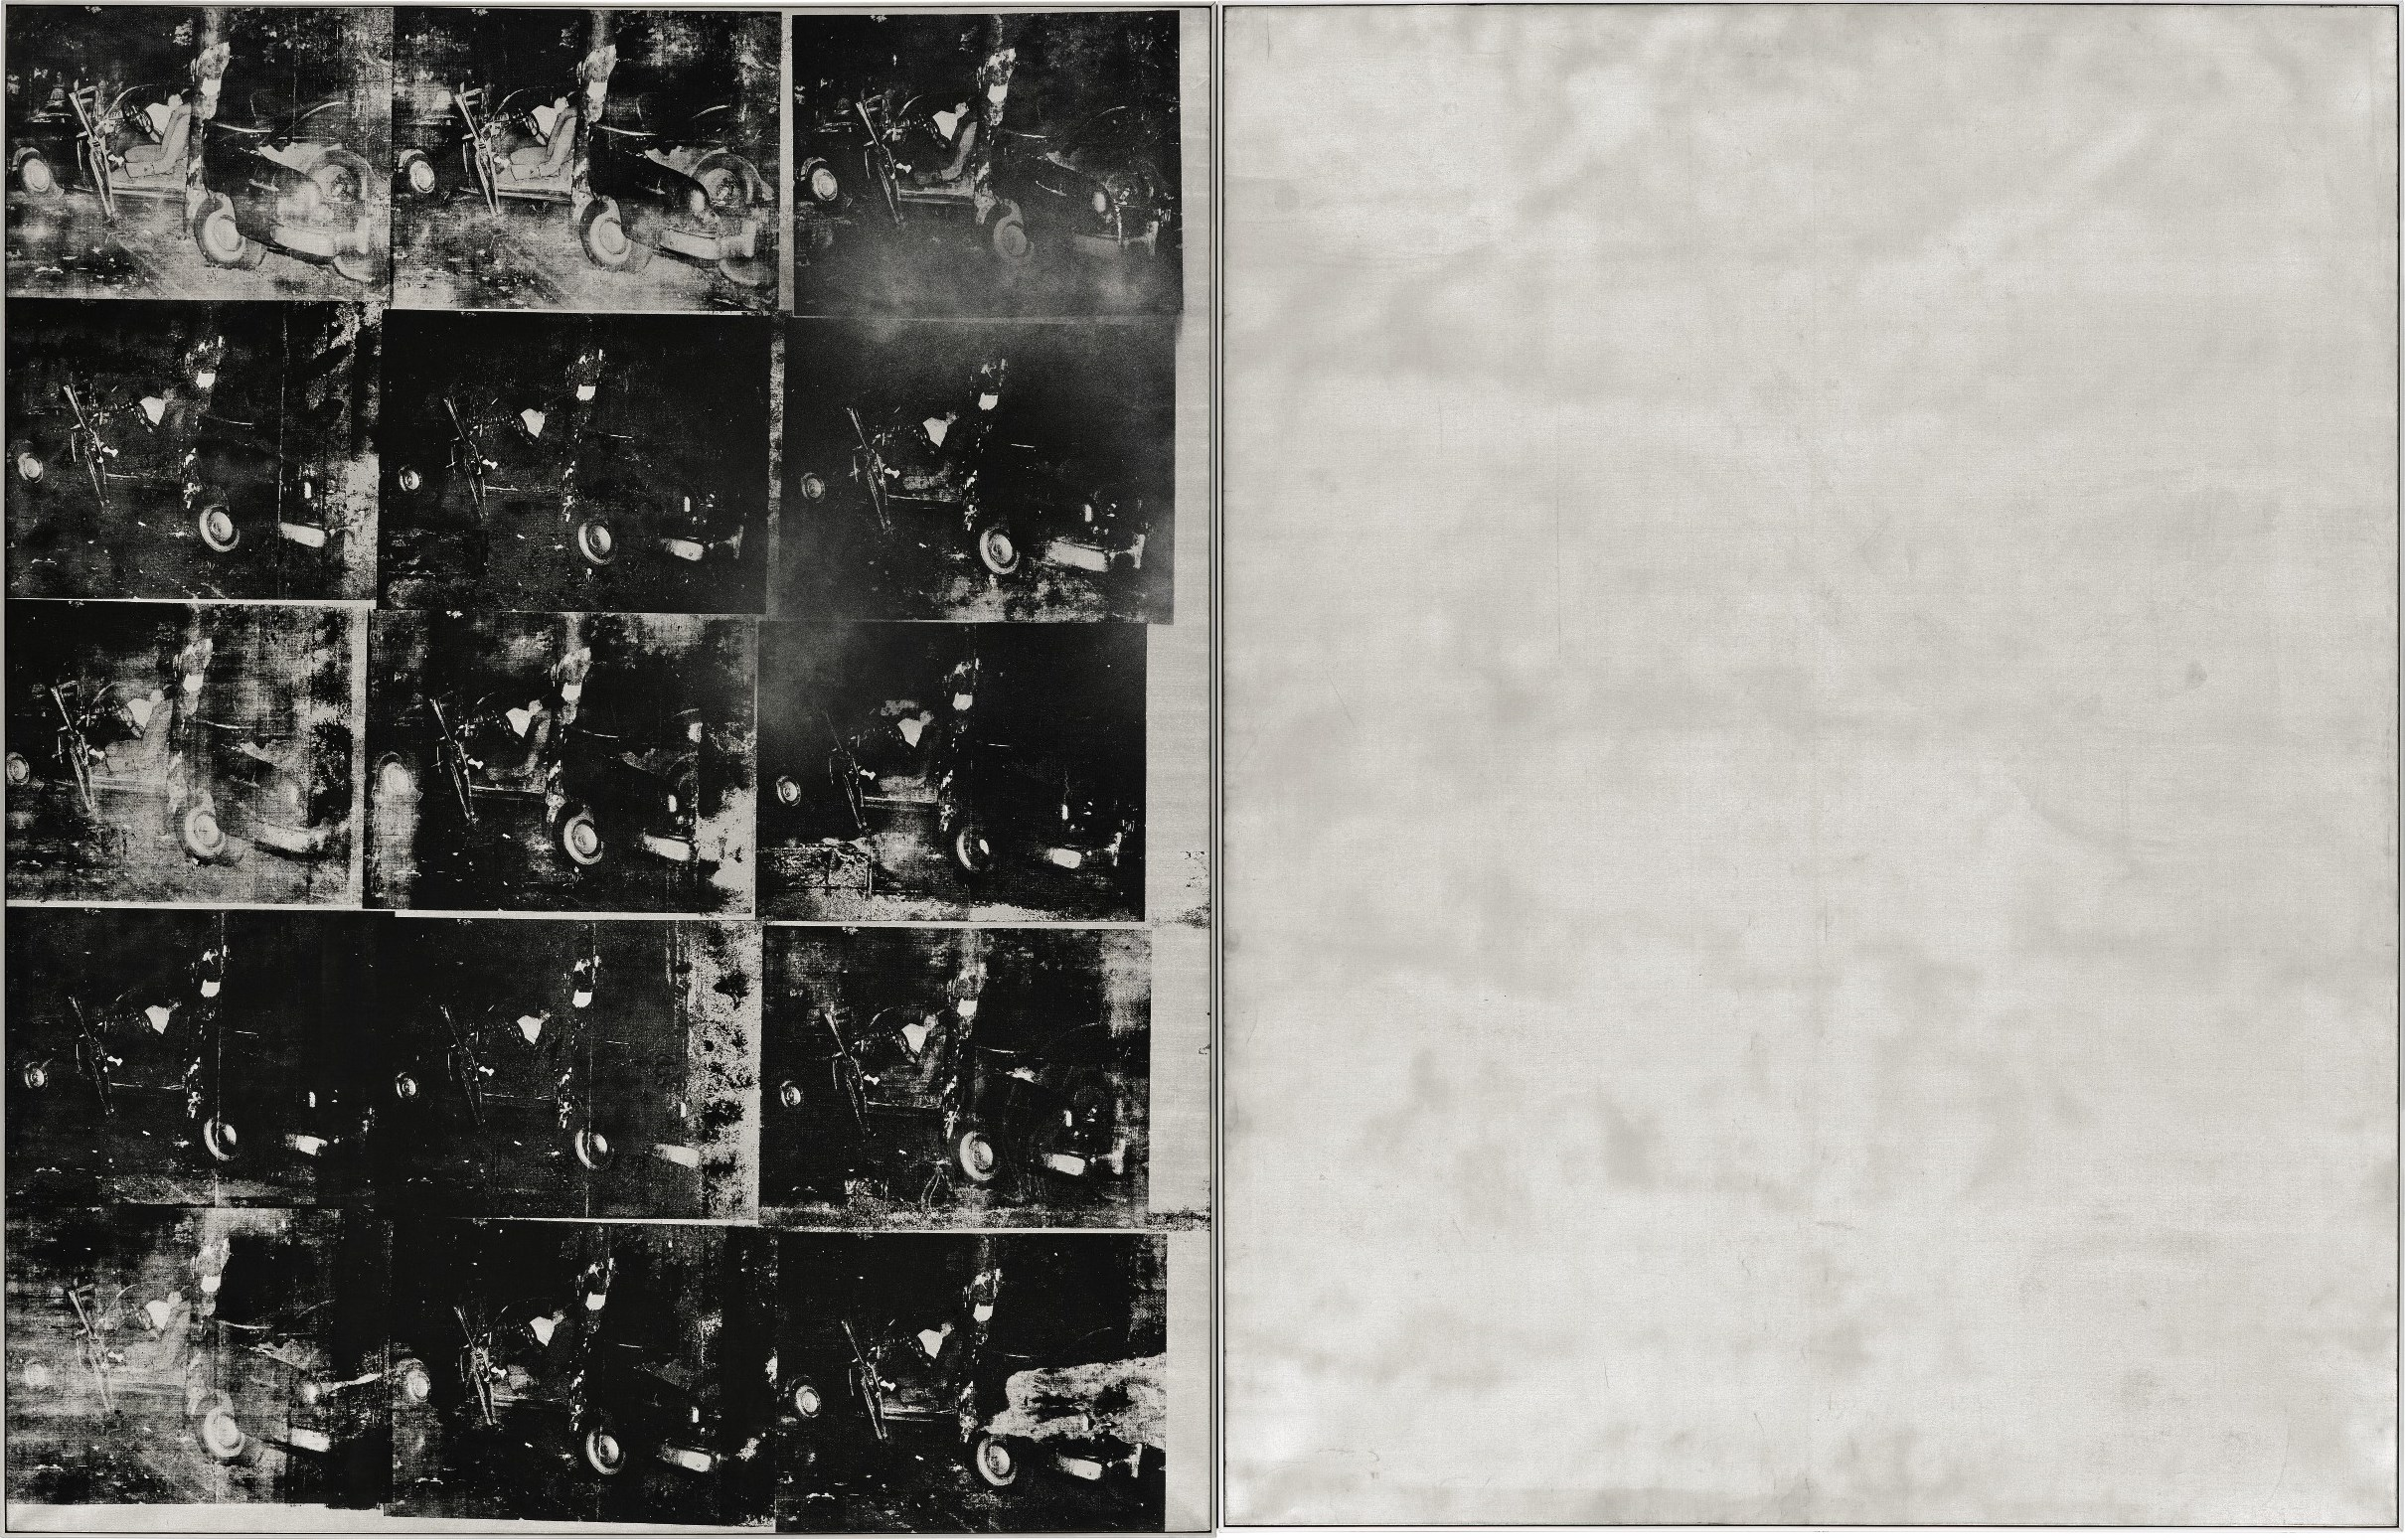 -Warhol-Silver-Car-Crash-Final